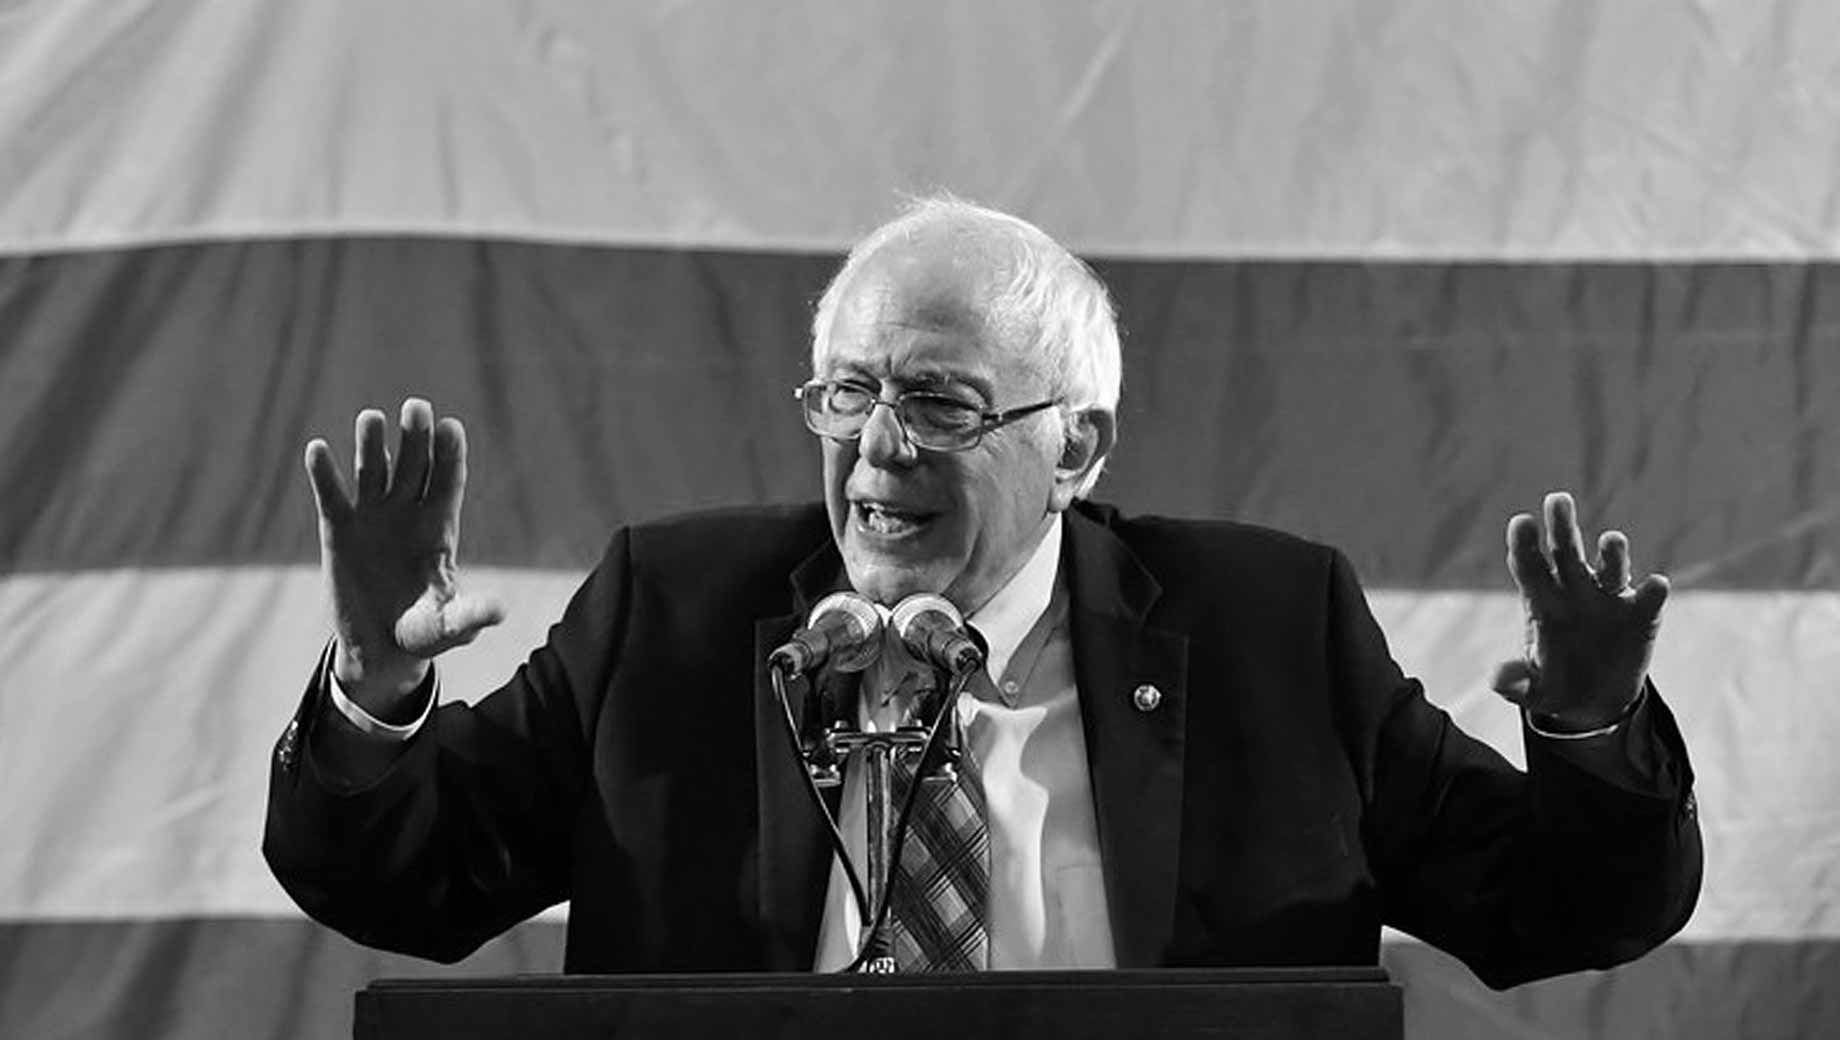 Sanders' Goal to Provide Basic Necessities for All